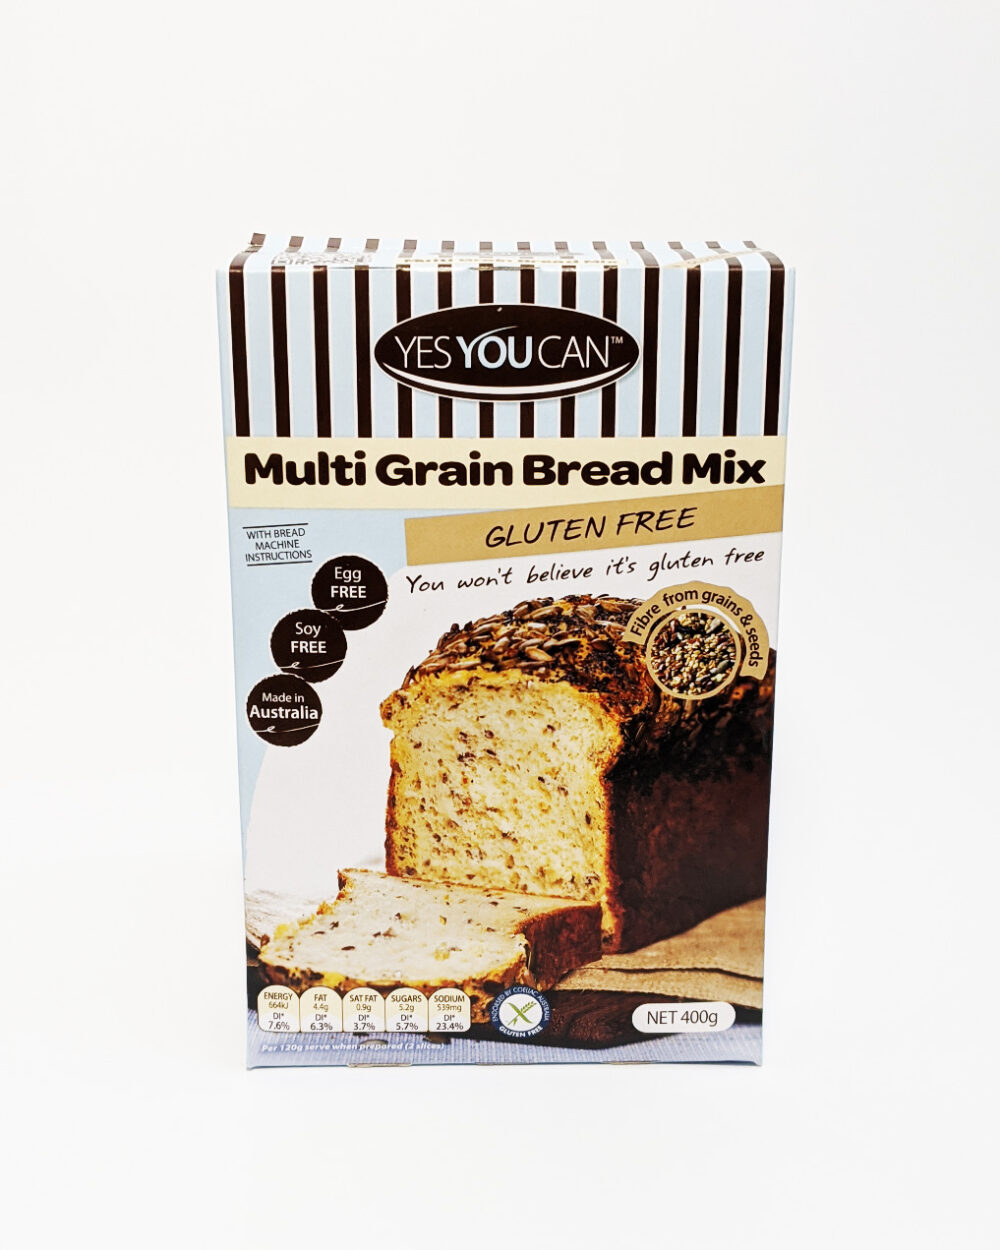 The Wholeness Co - Yes You Can Multigrain bread mix